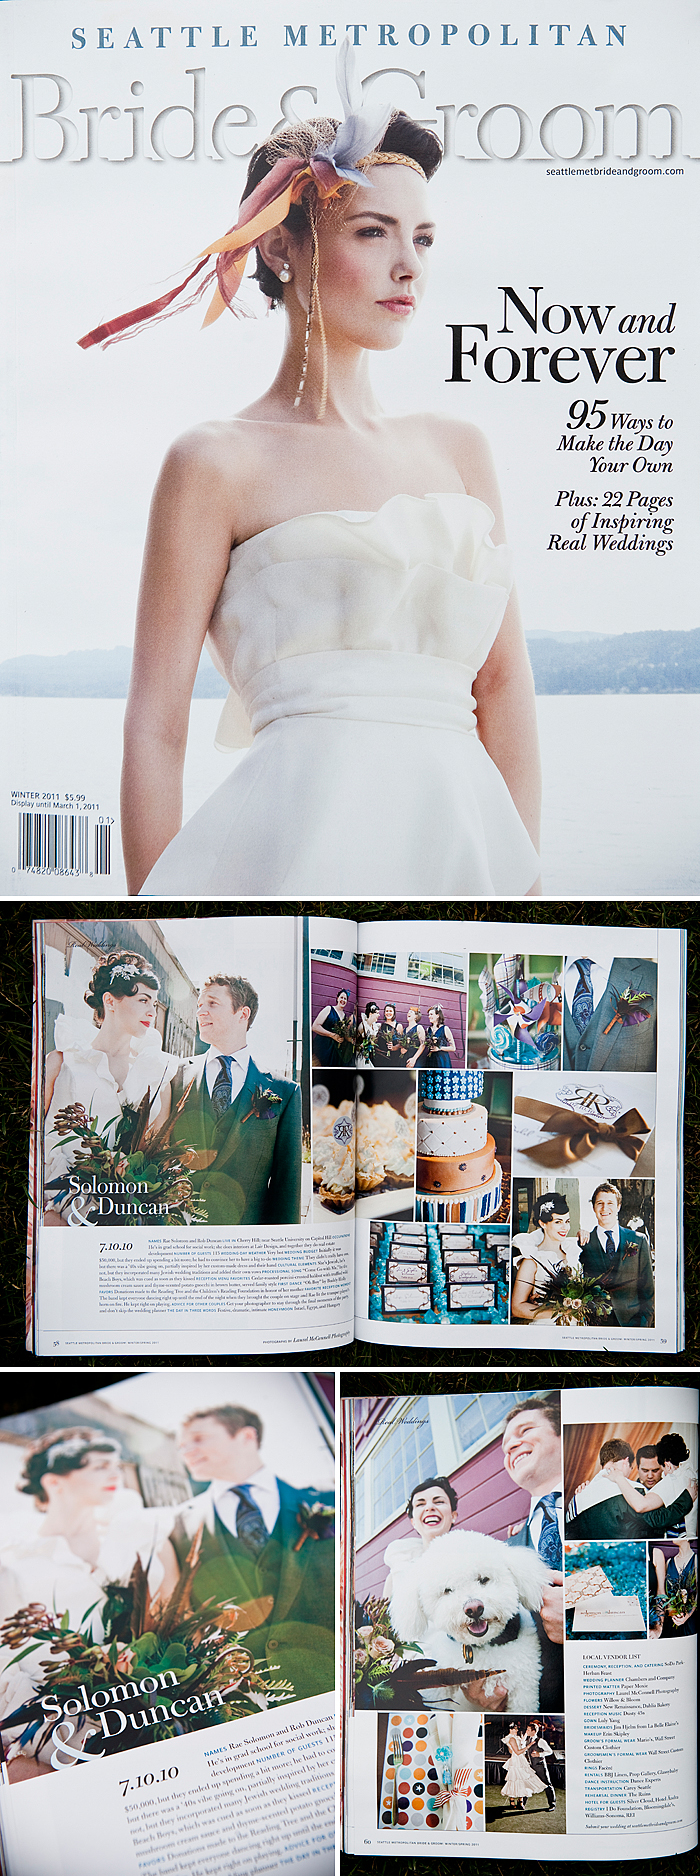 real wedding feature in Seattle Metropolitan Bride and Groom if a vintage inspired Sodo Park wedding